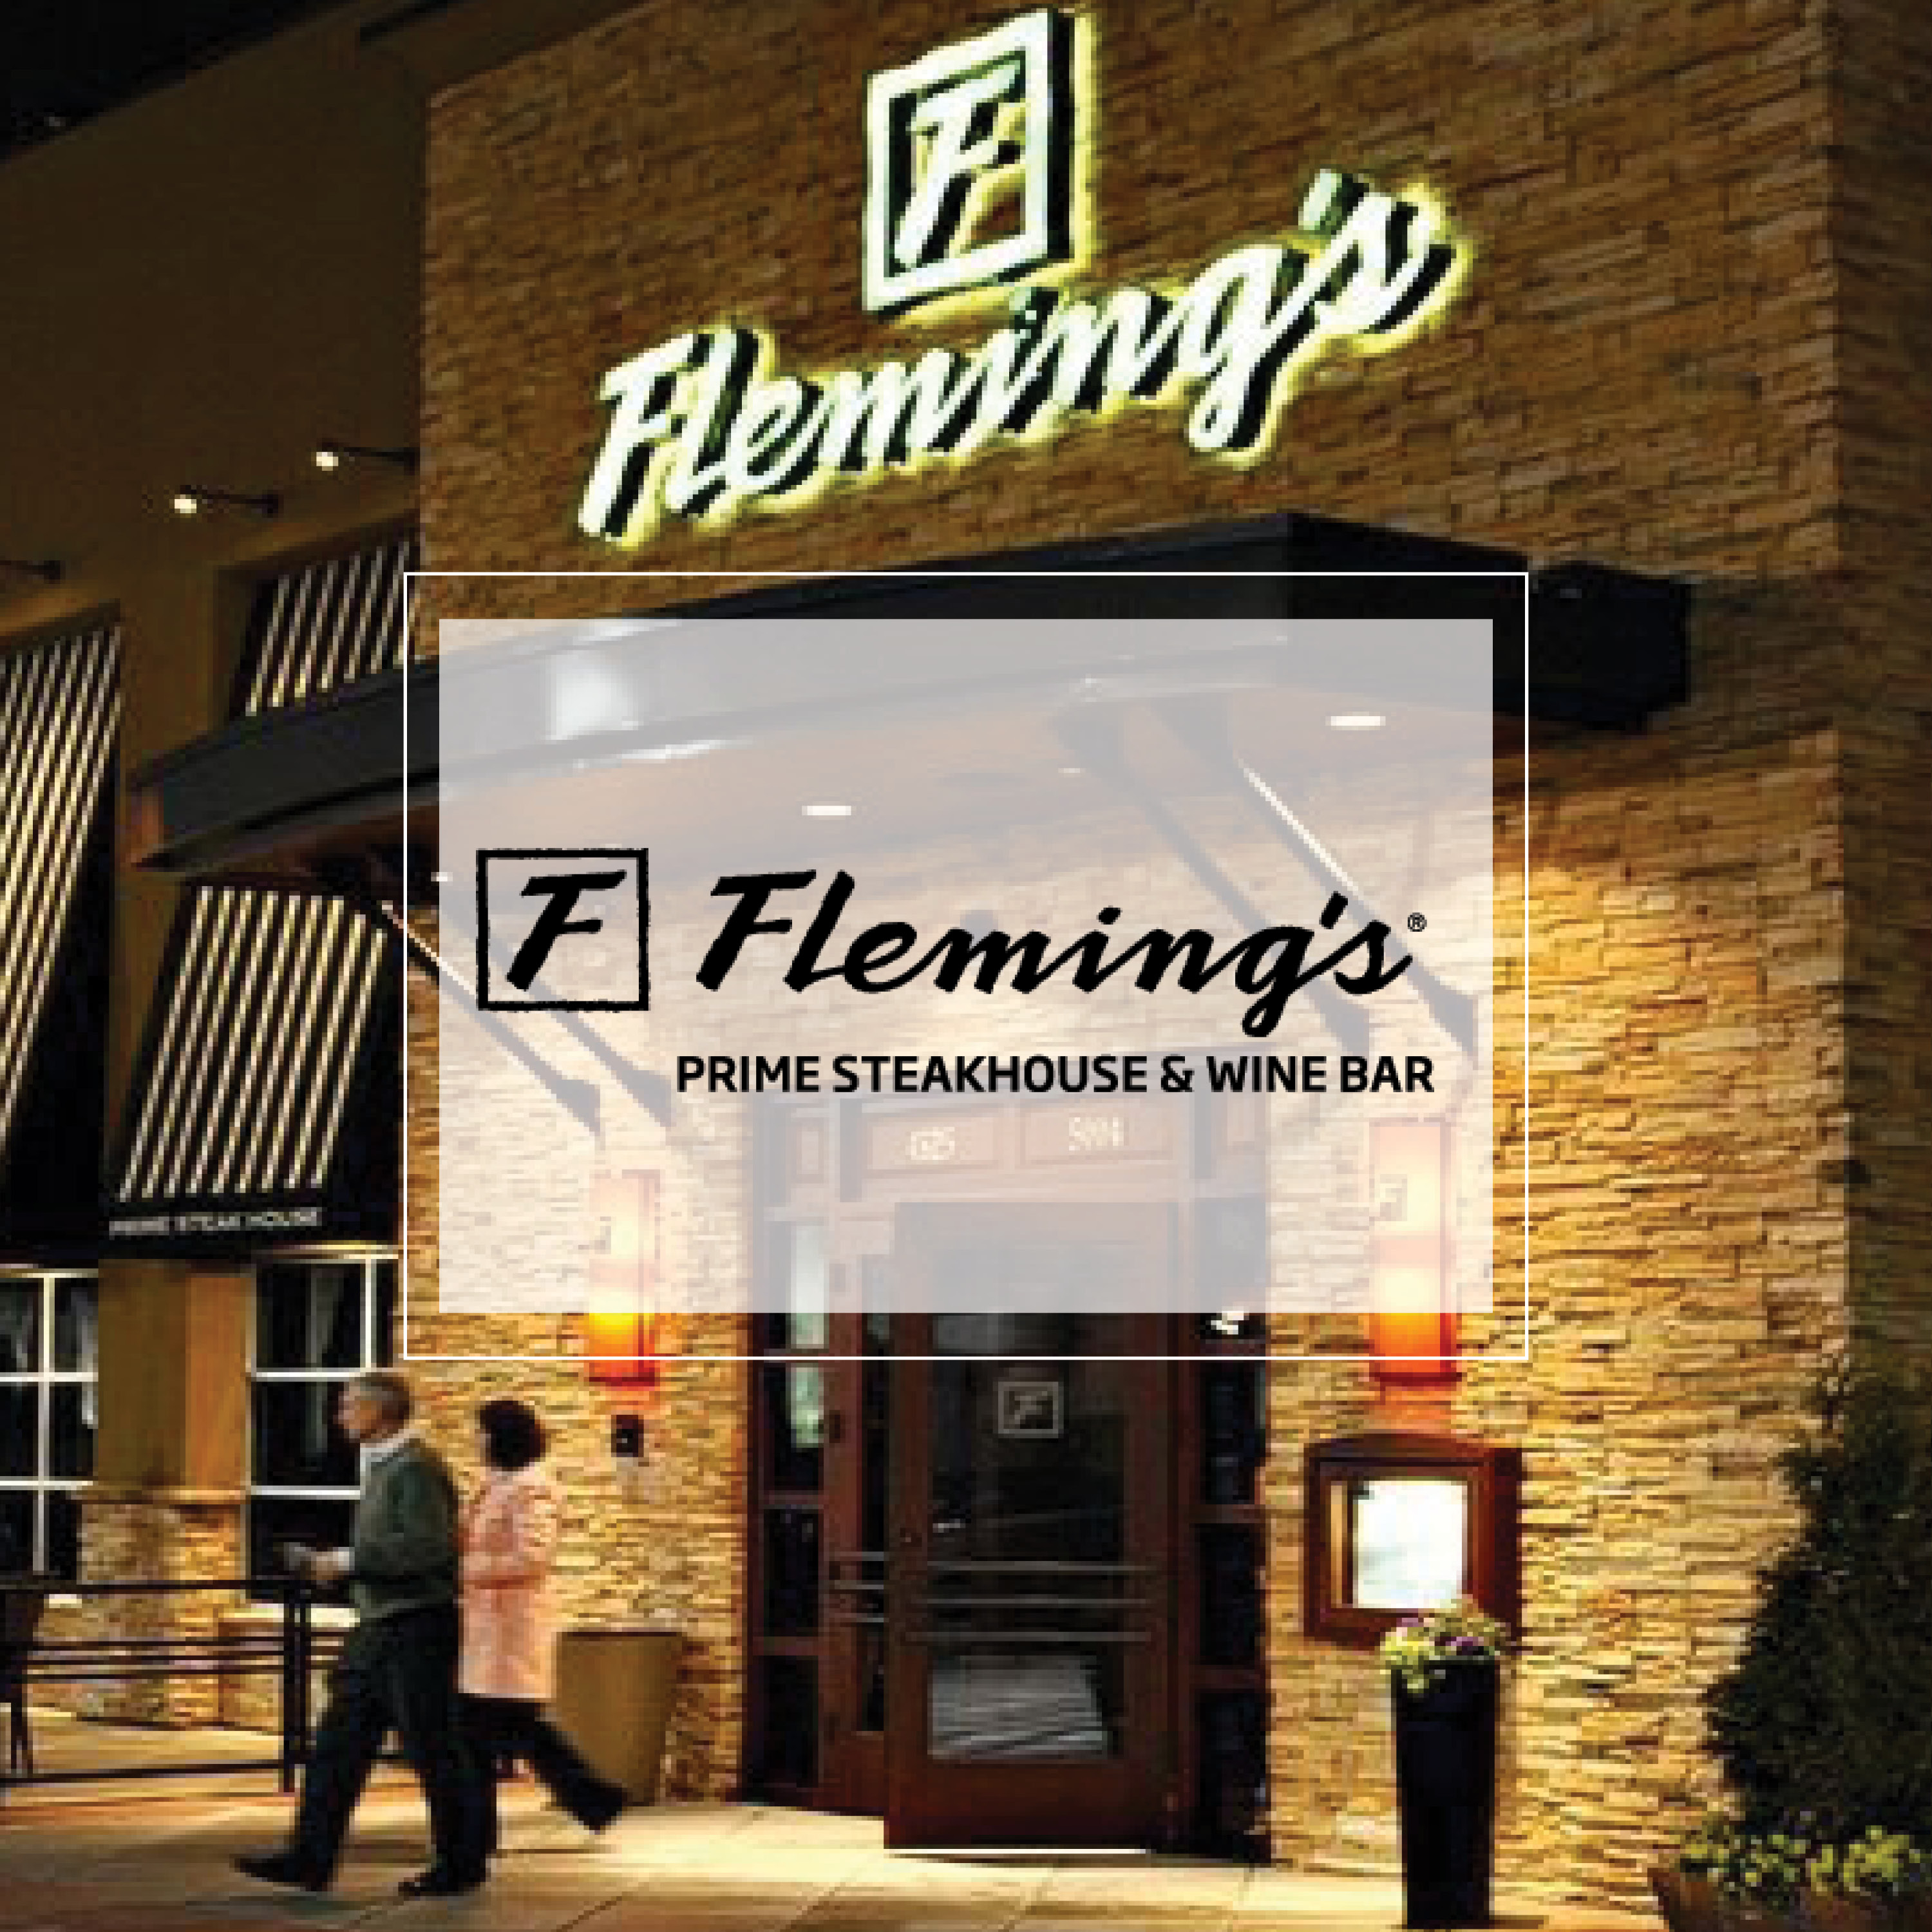 Flemings Steakhouse Dellagio orlando